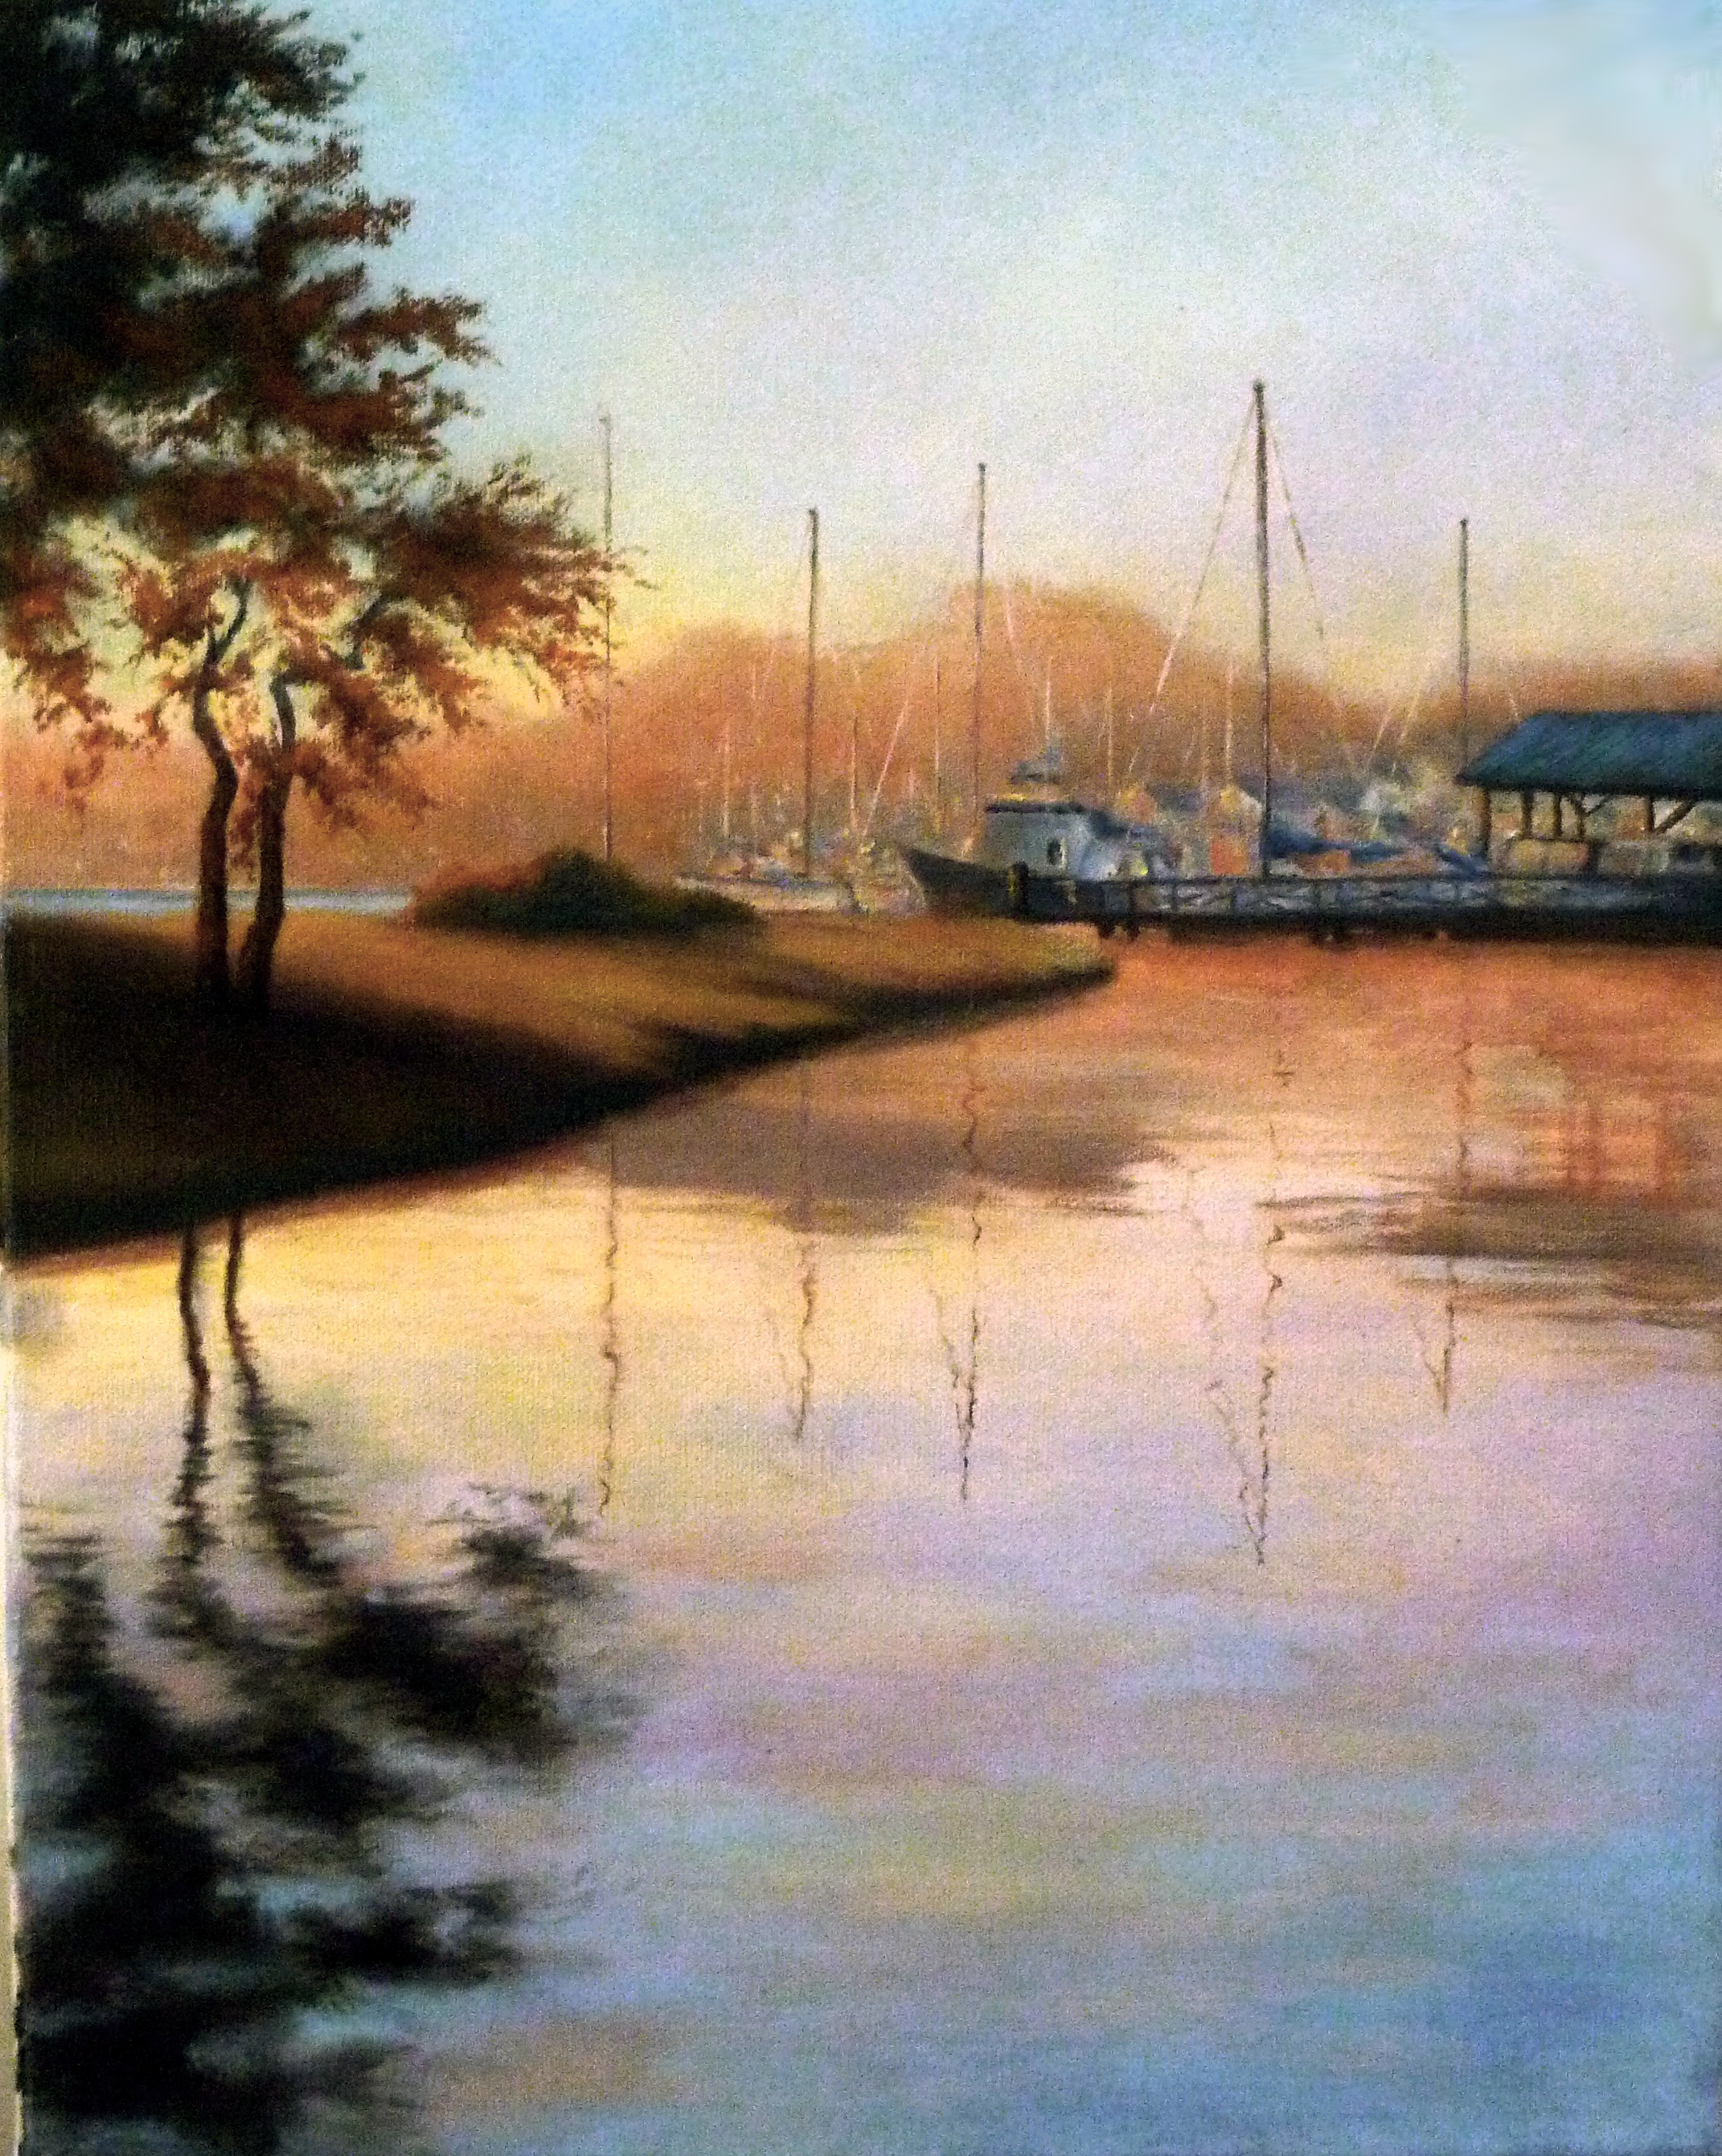 Original oil painting of the St. Michaels harbor at sunset